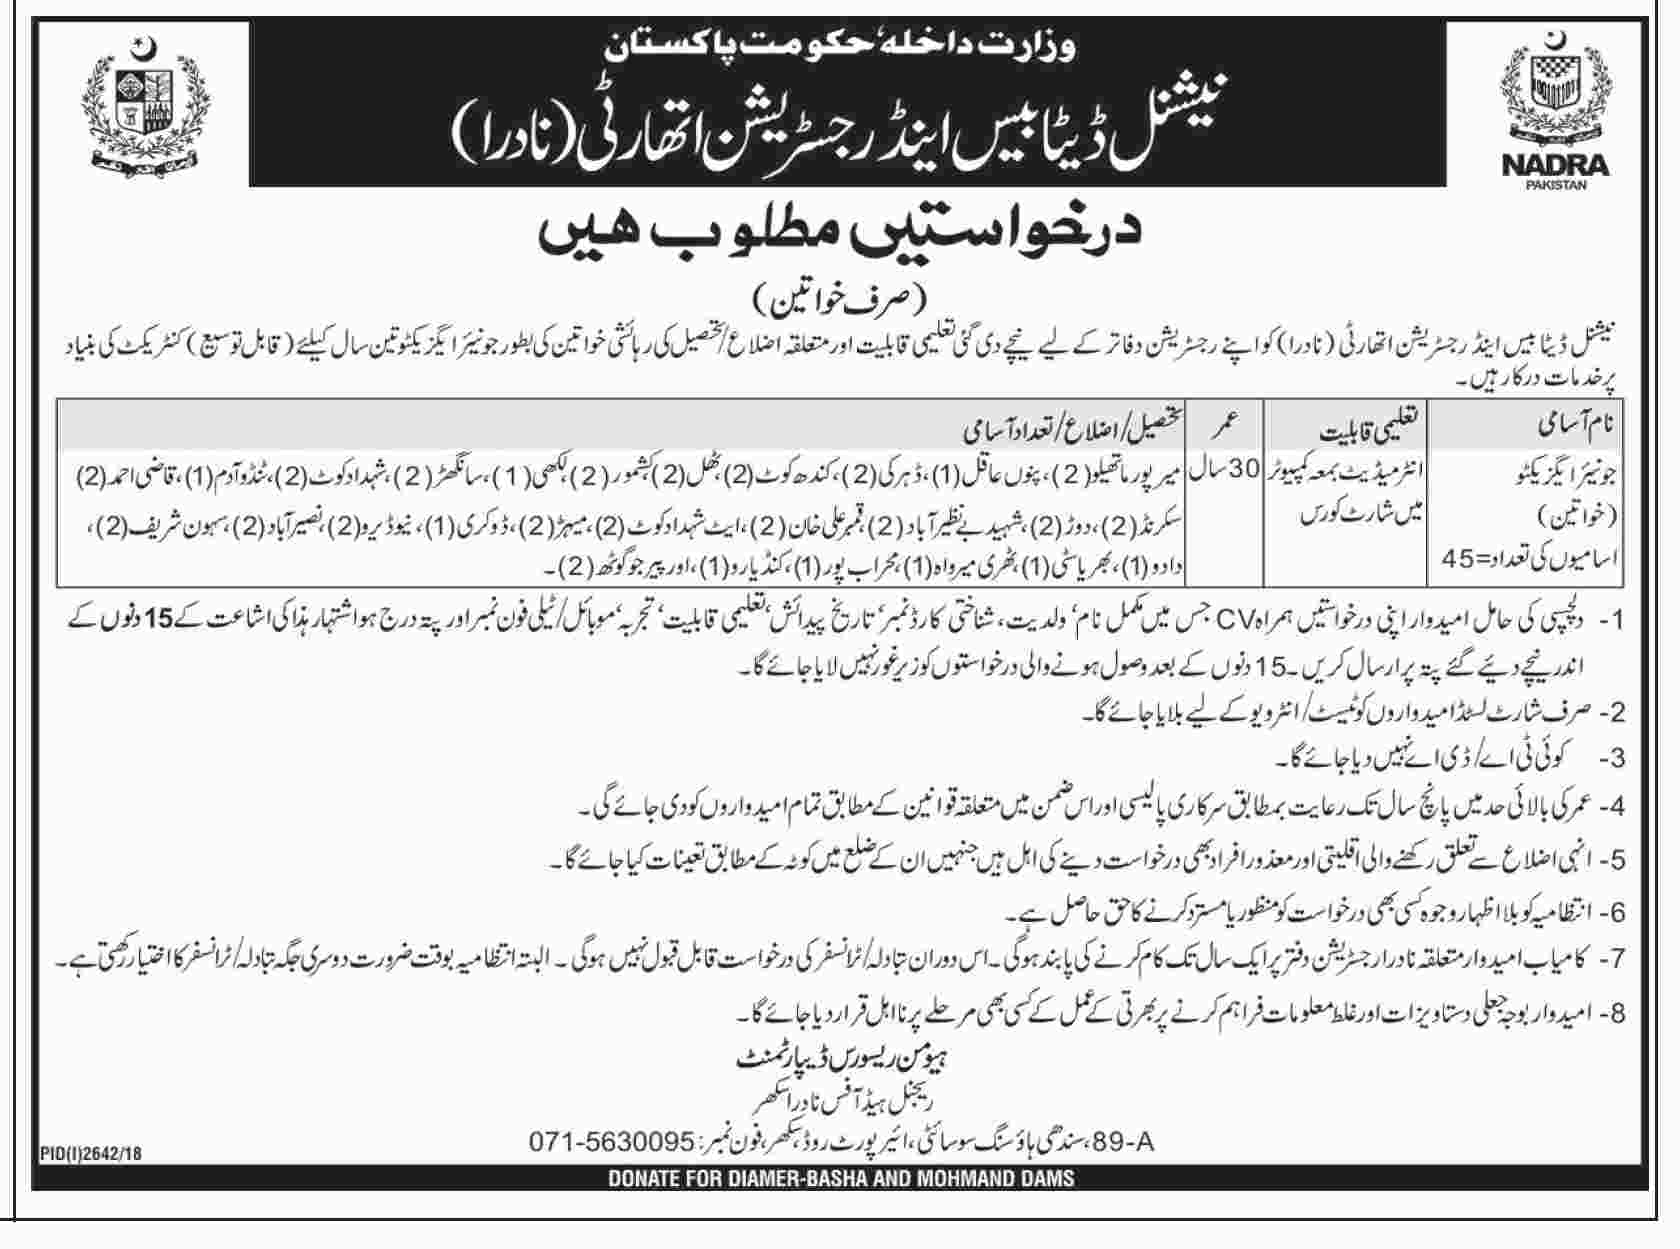 NADRA Sukkur Jobs 2018 National Database & Registration Authority Latest